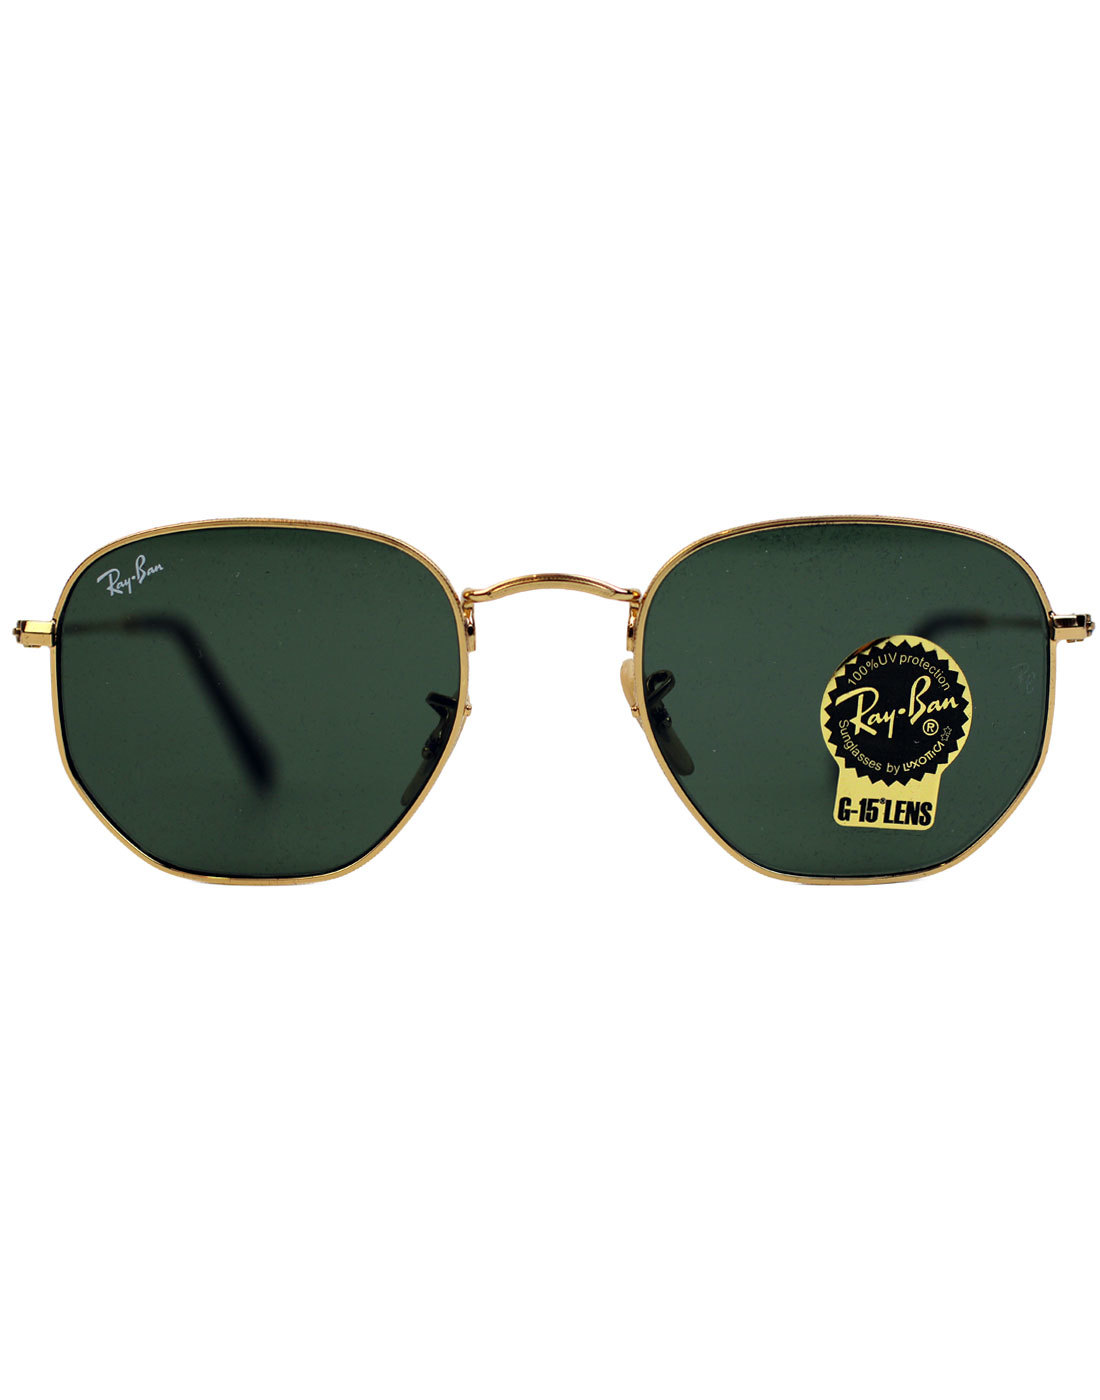 Hexagonal Round RAY-BAN Mod G-15 Lens Sunglasses